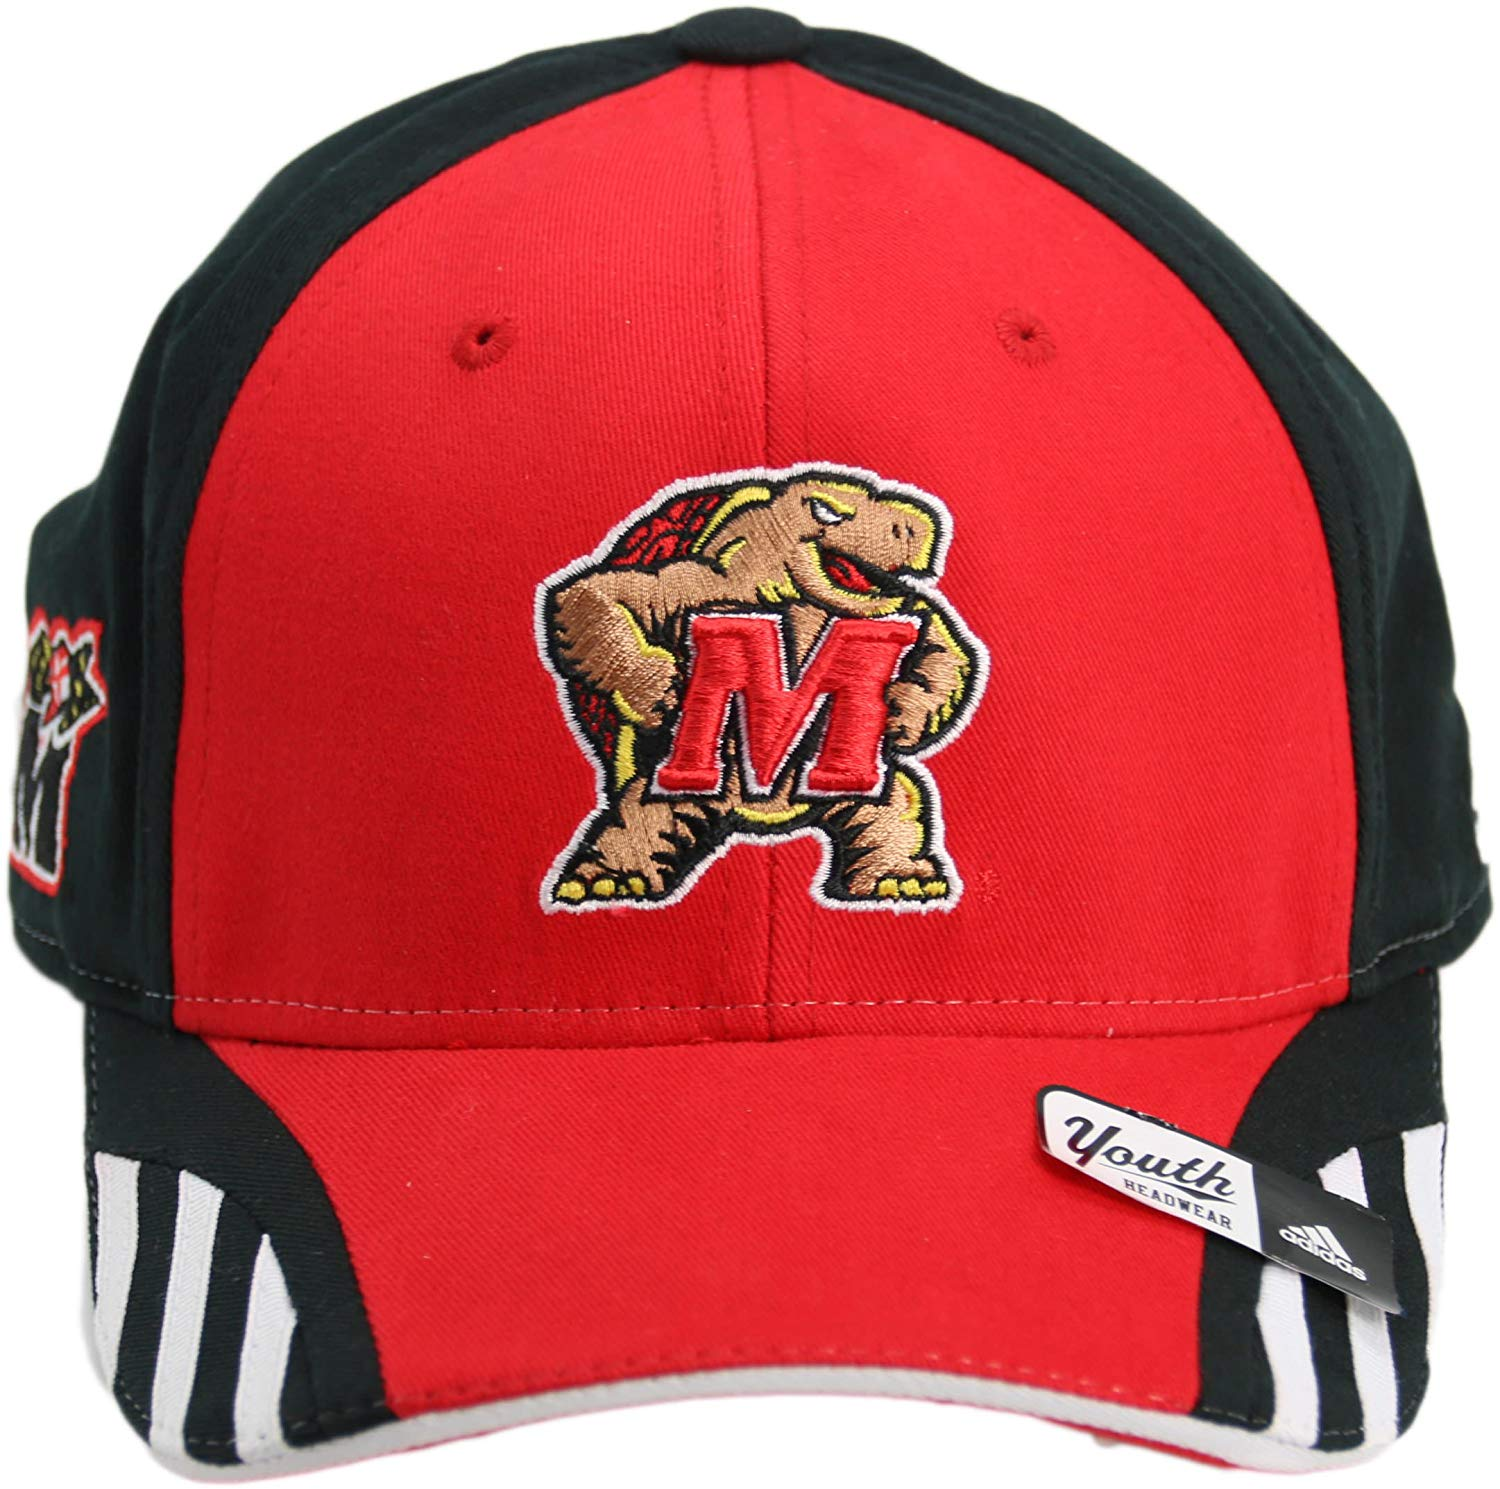 reputable site 93a1c ceb62 release date get quotations ncaa maryland terps youth hat cap 100f5 83e3e